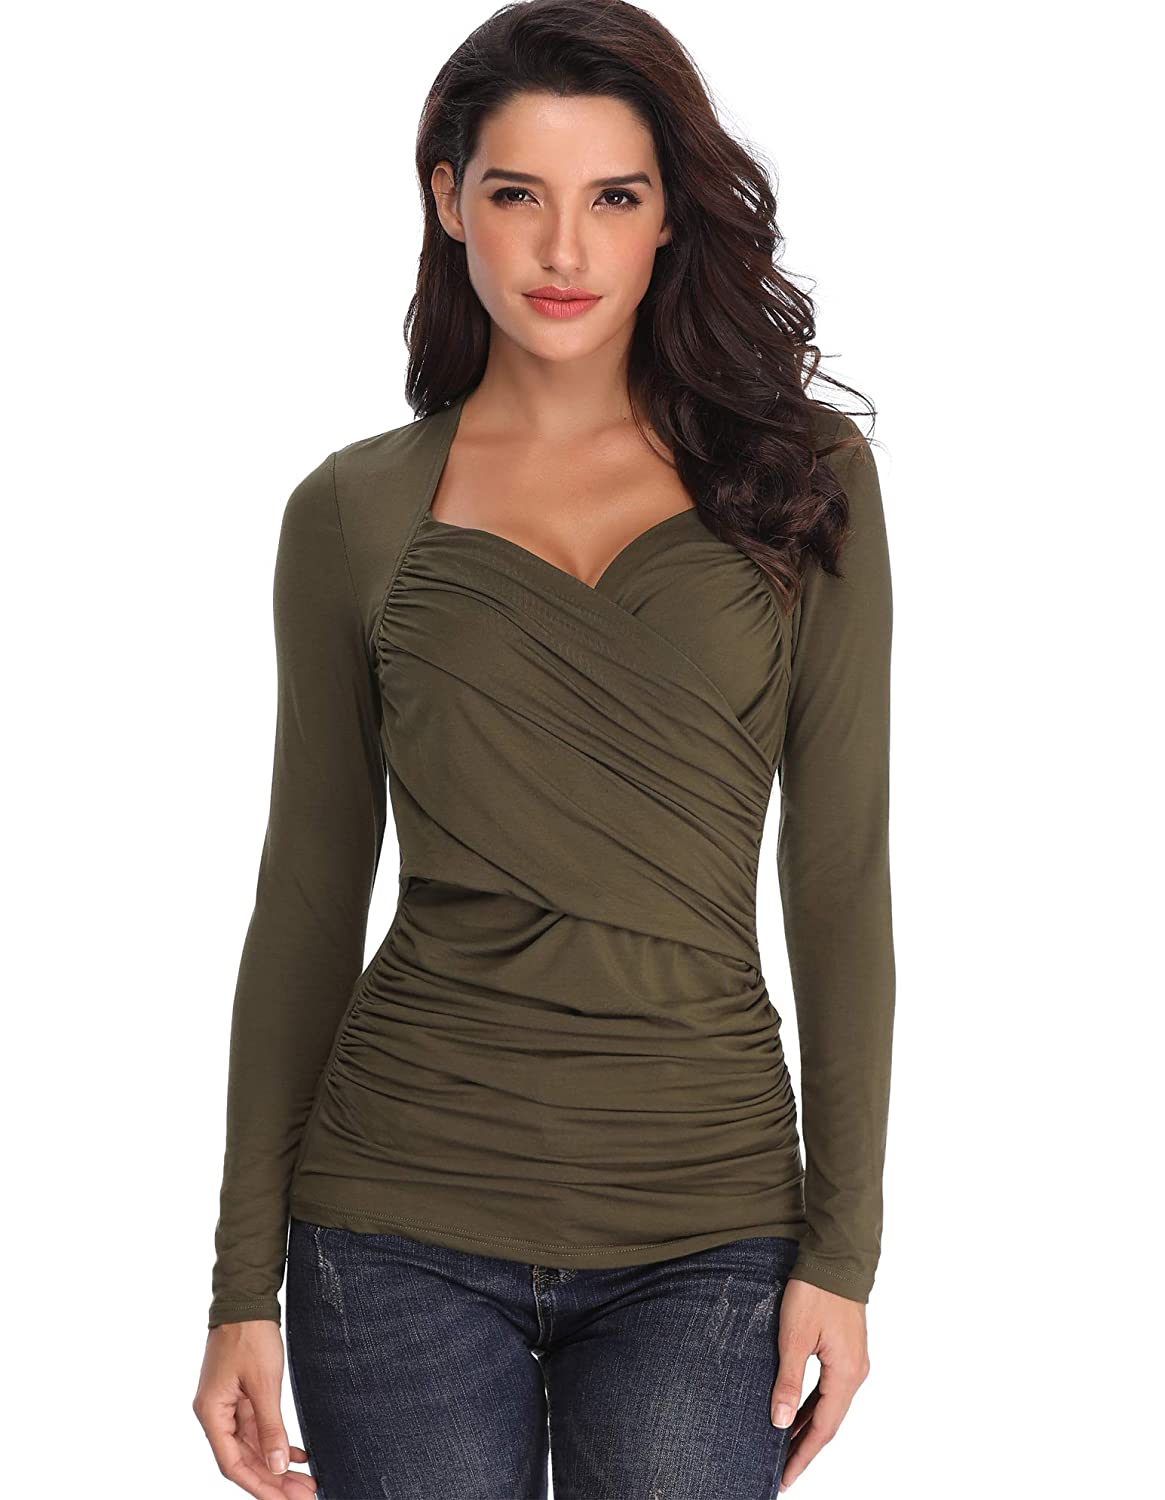 ANIENAYA Womens Long Sleeves Tops Ladies Wrap V Neck Tunics Sexy Blouses T  Shirts Shawl Collar Crossover Casual Pleated Slim Fit  Amazon.co.uk   Clothing 734606bd668a